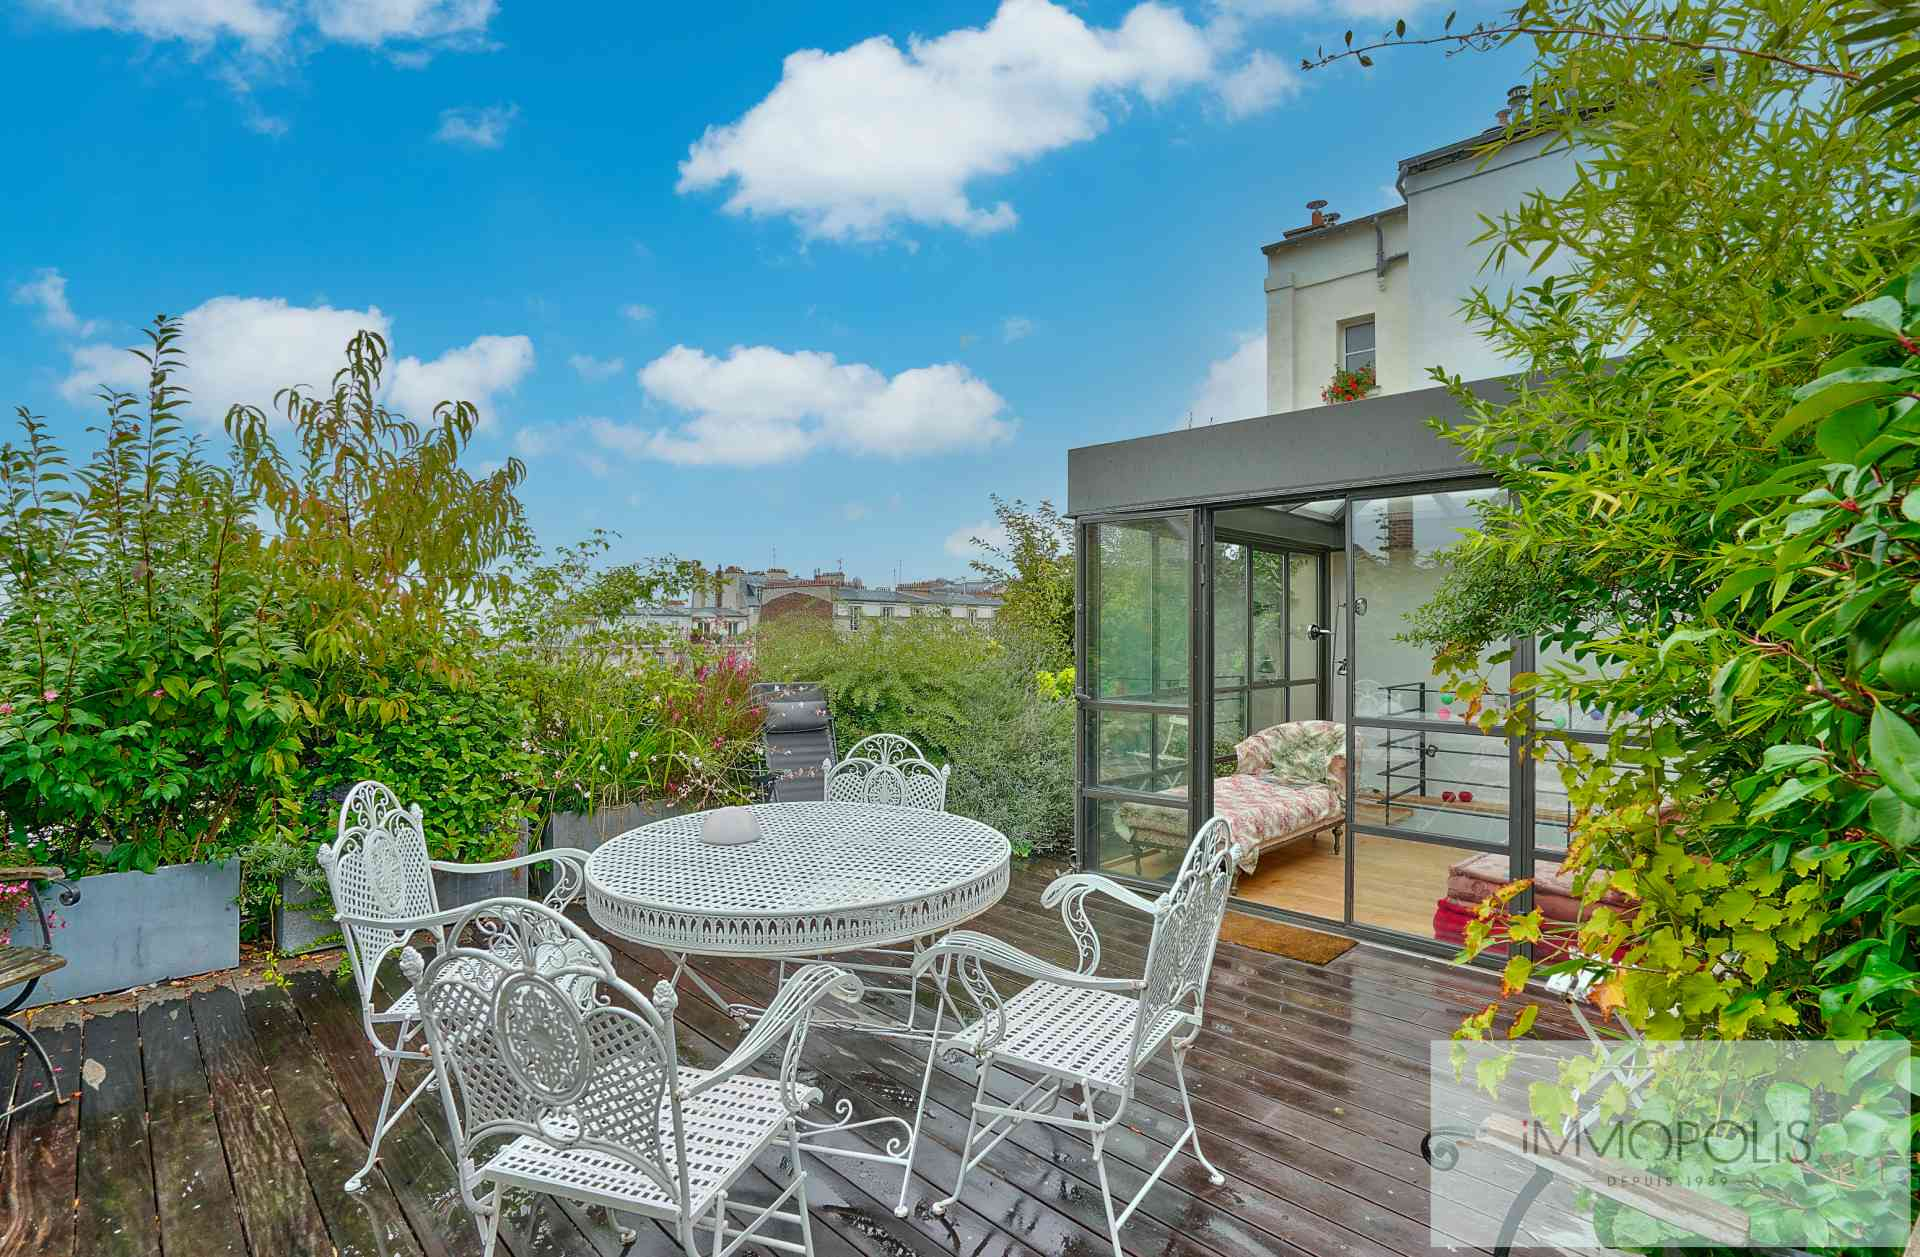 House in the heart of Montmartre with terraces. 1